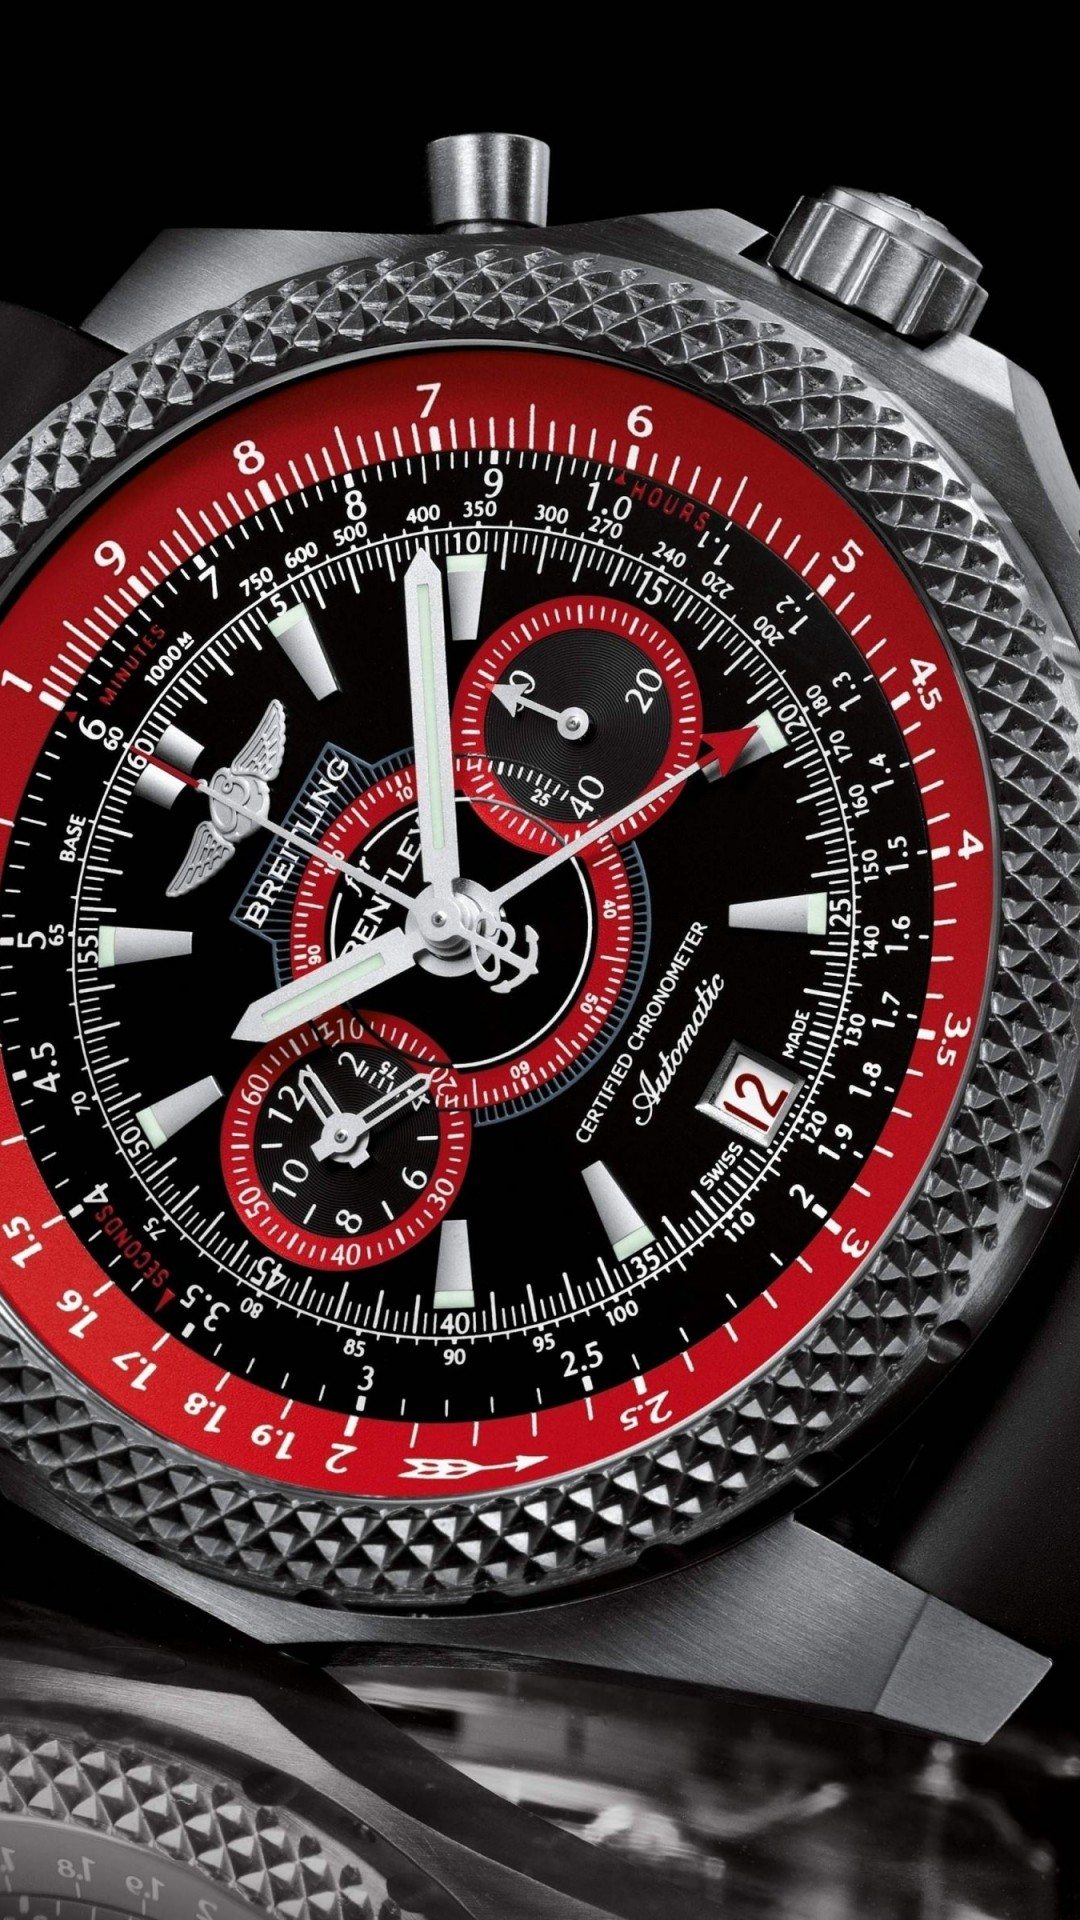 Breitling Watch Wallpaper for SONY Xperia Z3